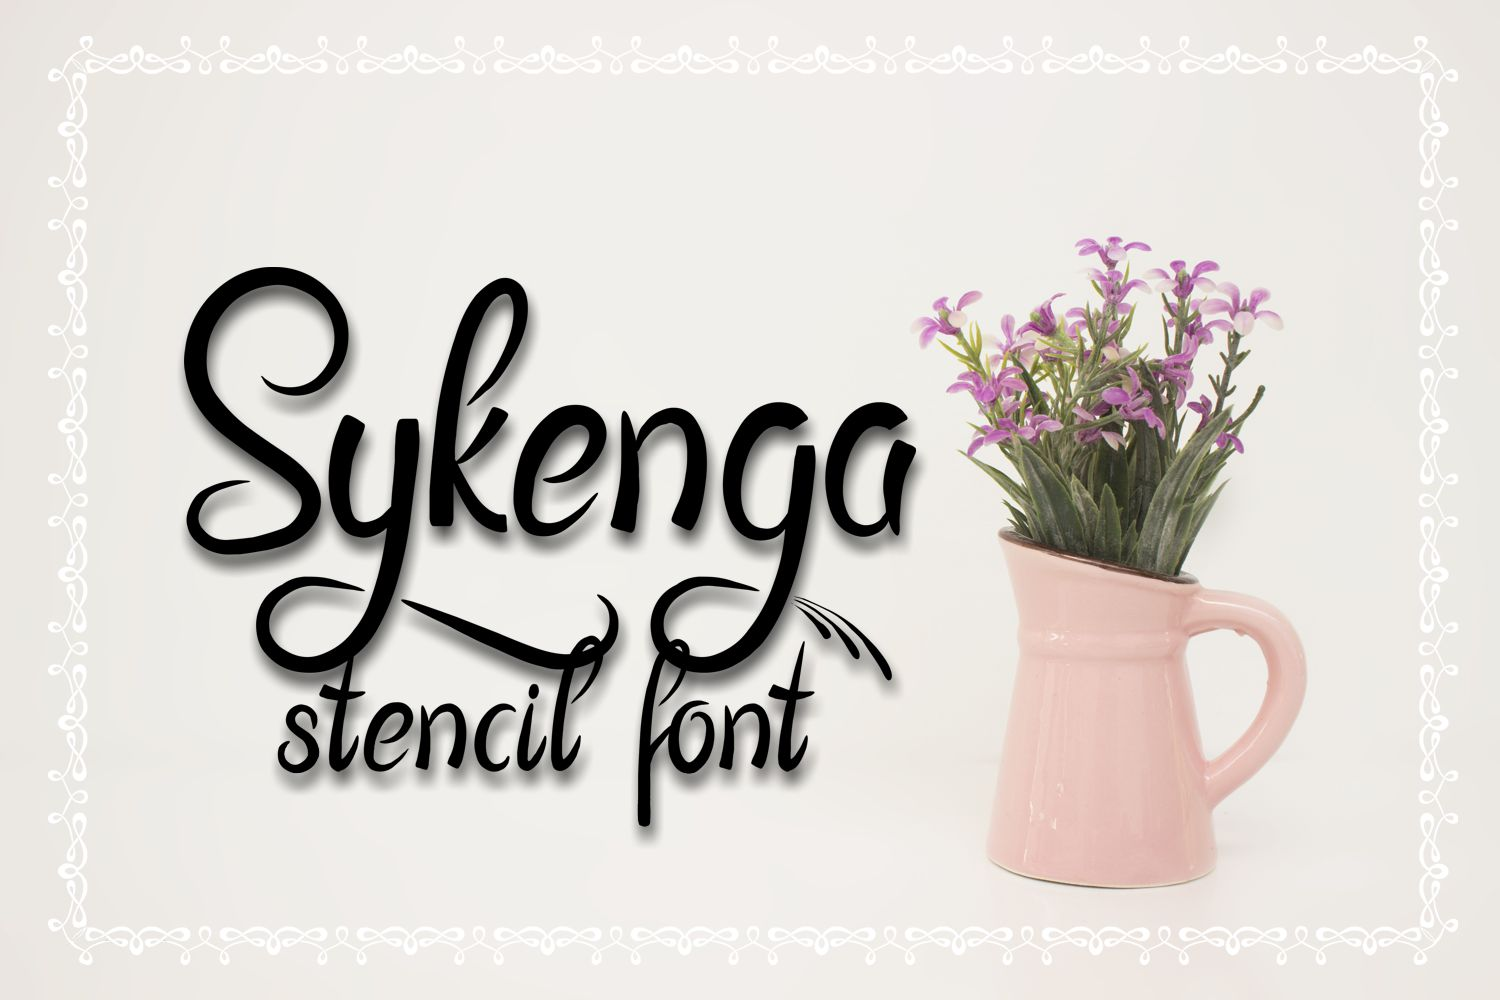 Sykenga Stencil Font example image 1